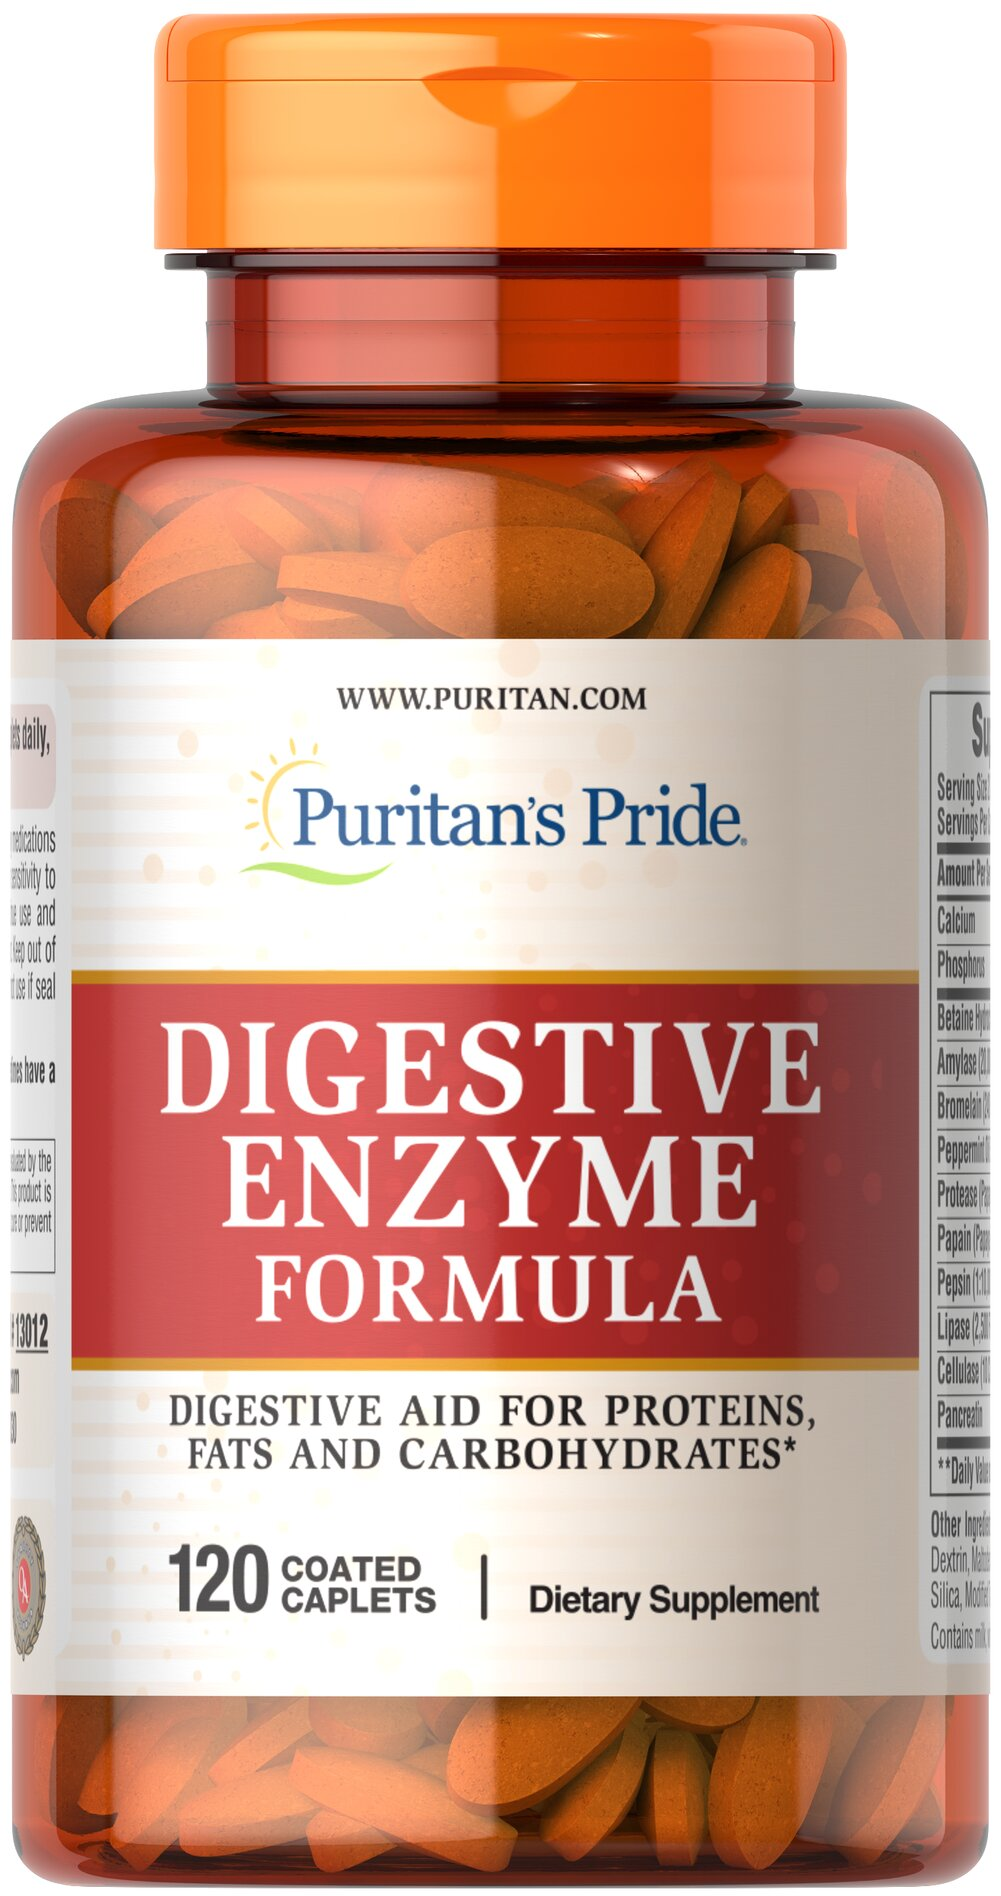 Super Strength Multi Enzyme <p>Enzymes break down the nutritional components of proteins, fats and carbohydrates, making these nutrients available for the body's energy needs, cell growth and other vital functions.** This holistically balanced blend is an enzyme formula that can be used to support proper digestion.**</p><p>Adults can take two (2) caplets, preferably with a meal.</p> 120 Caplets  $27.99